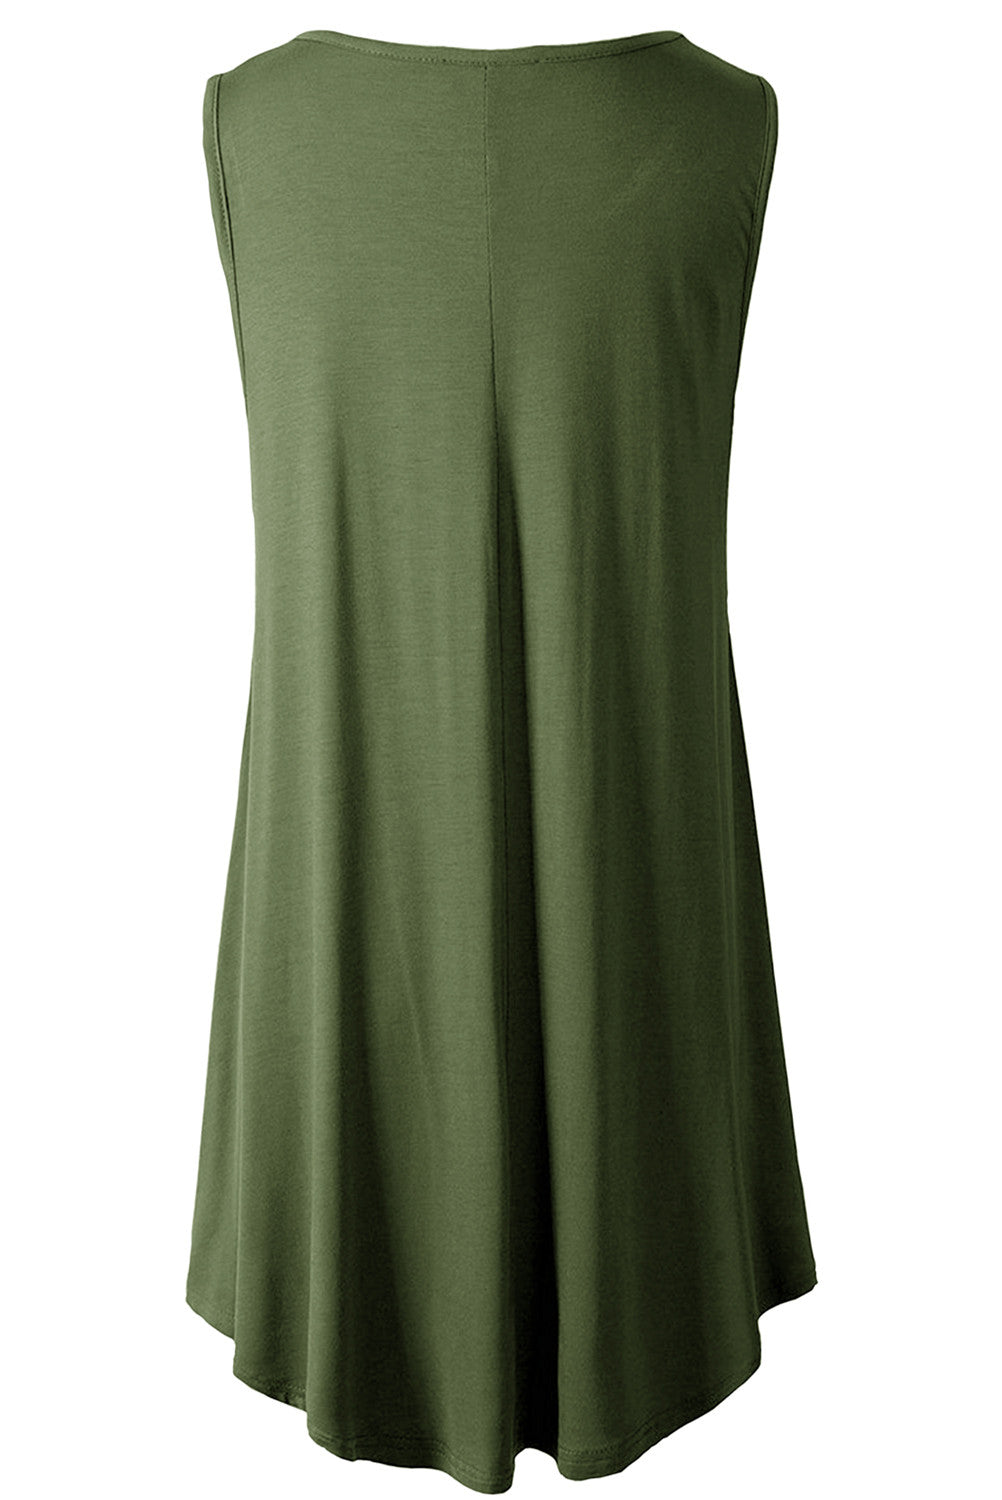 Sleeveless Flare Hem Tunic Top